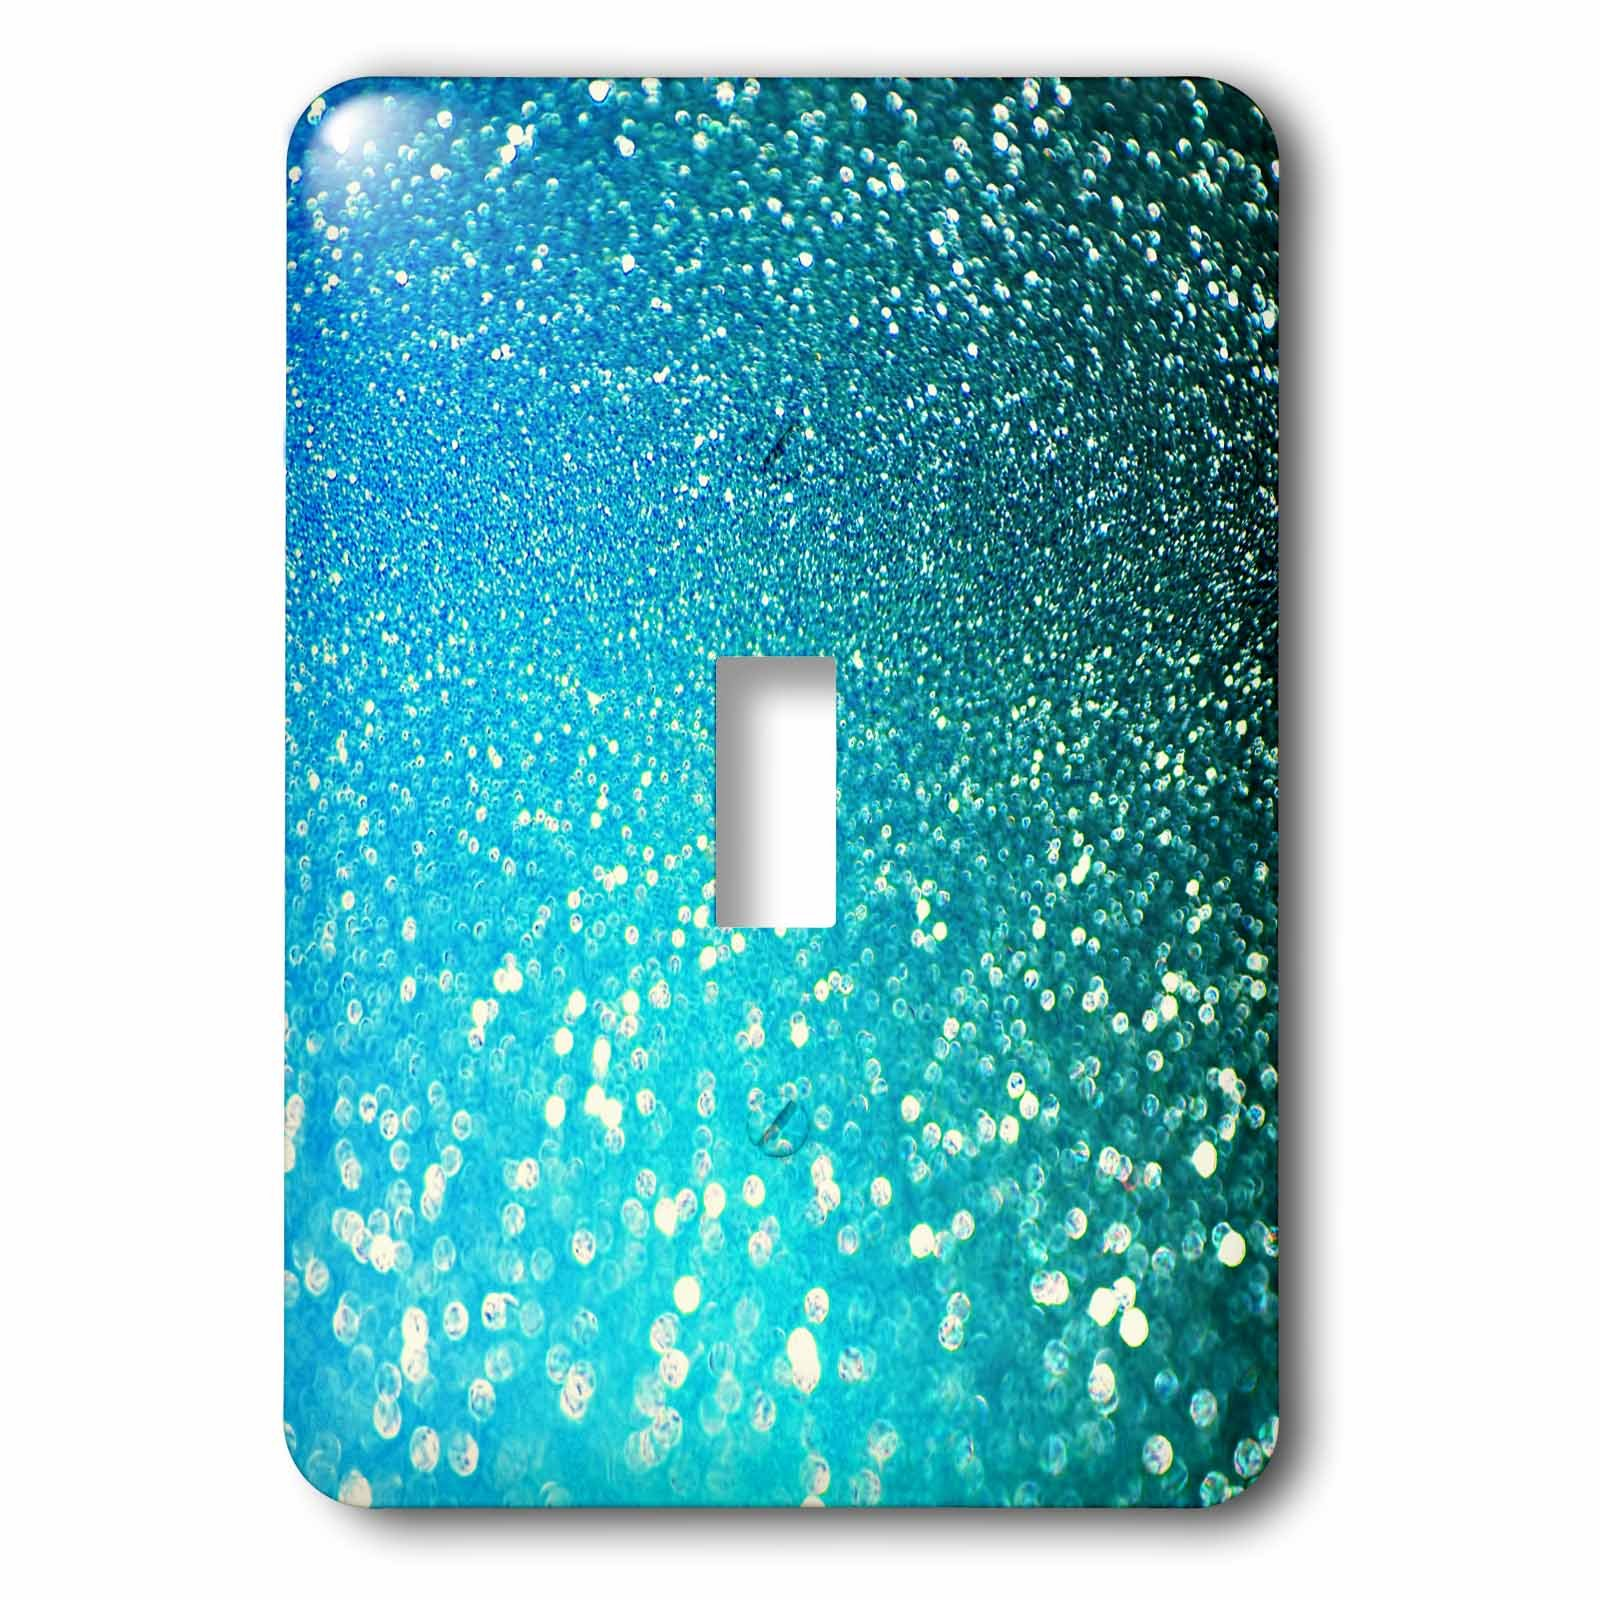 3dRose (lsp_266918_1) Single Toggle Switch (1) Sparkling Beach Blue Luxury Elegant Mermaid Glitter Effect Art Print